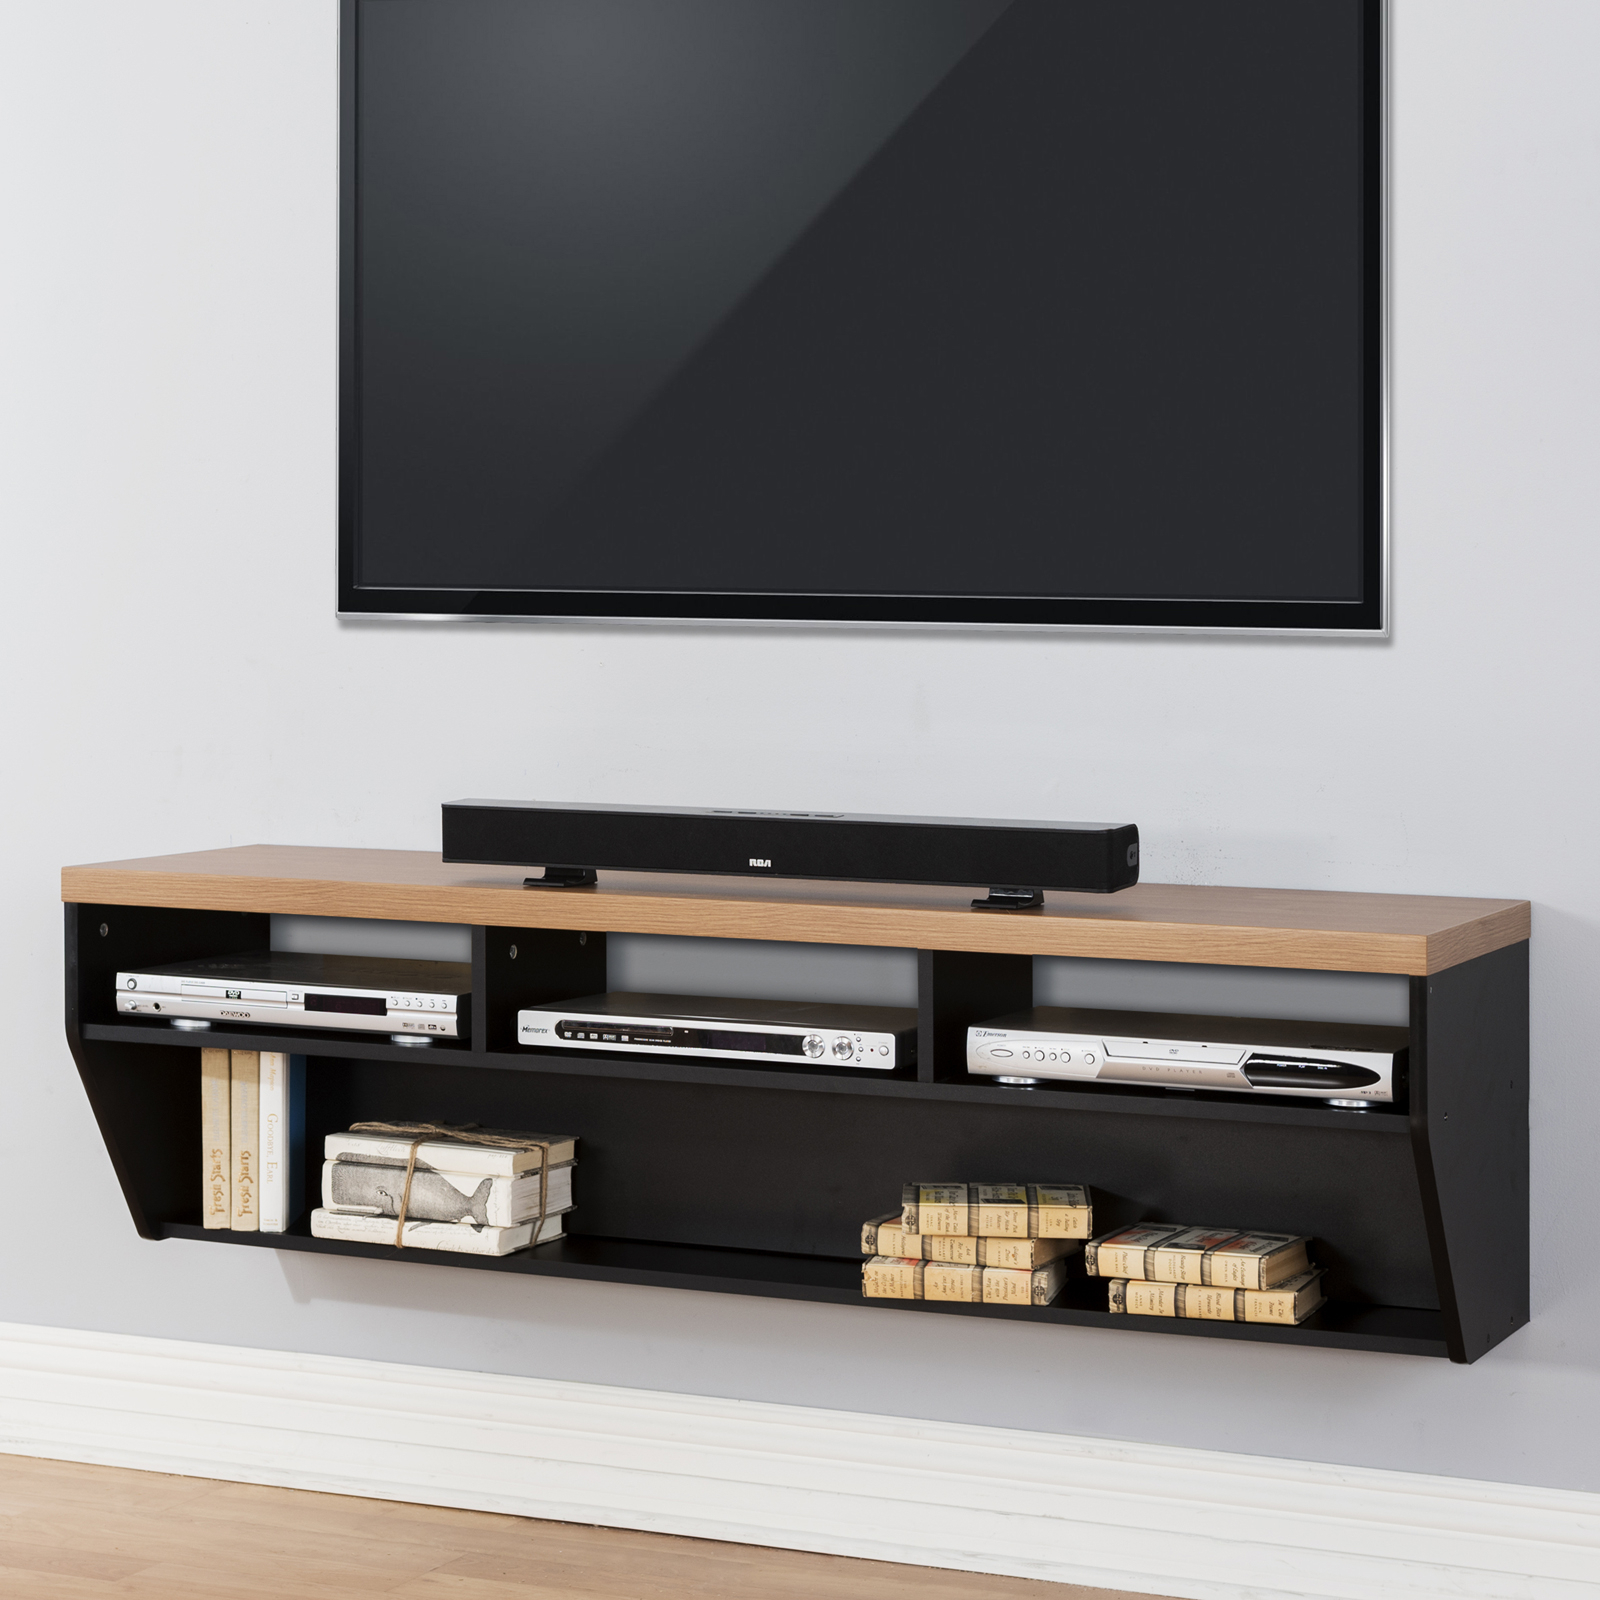 Martin Furniture Angled Sides Wall Mounted Tv Shelf – Tv Within Baby Proof Contemporary Tv Cabinets (View 14 of 15)